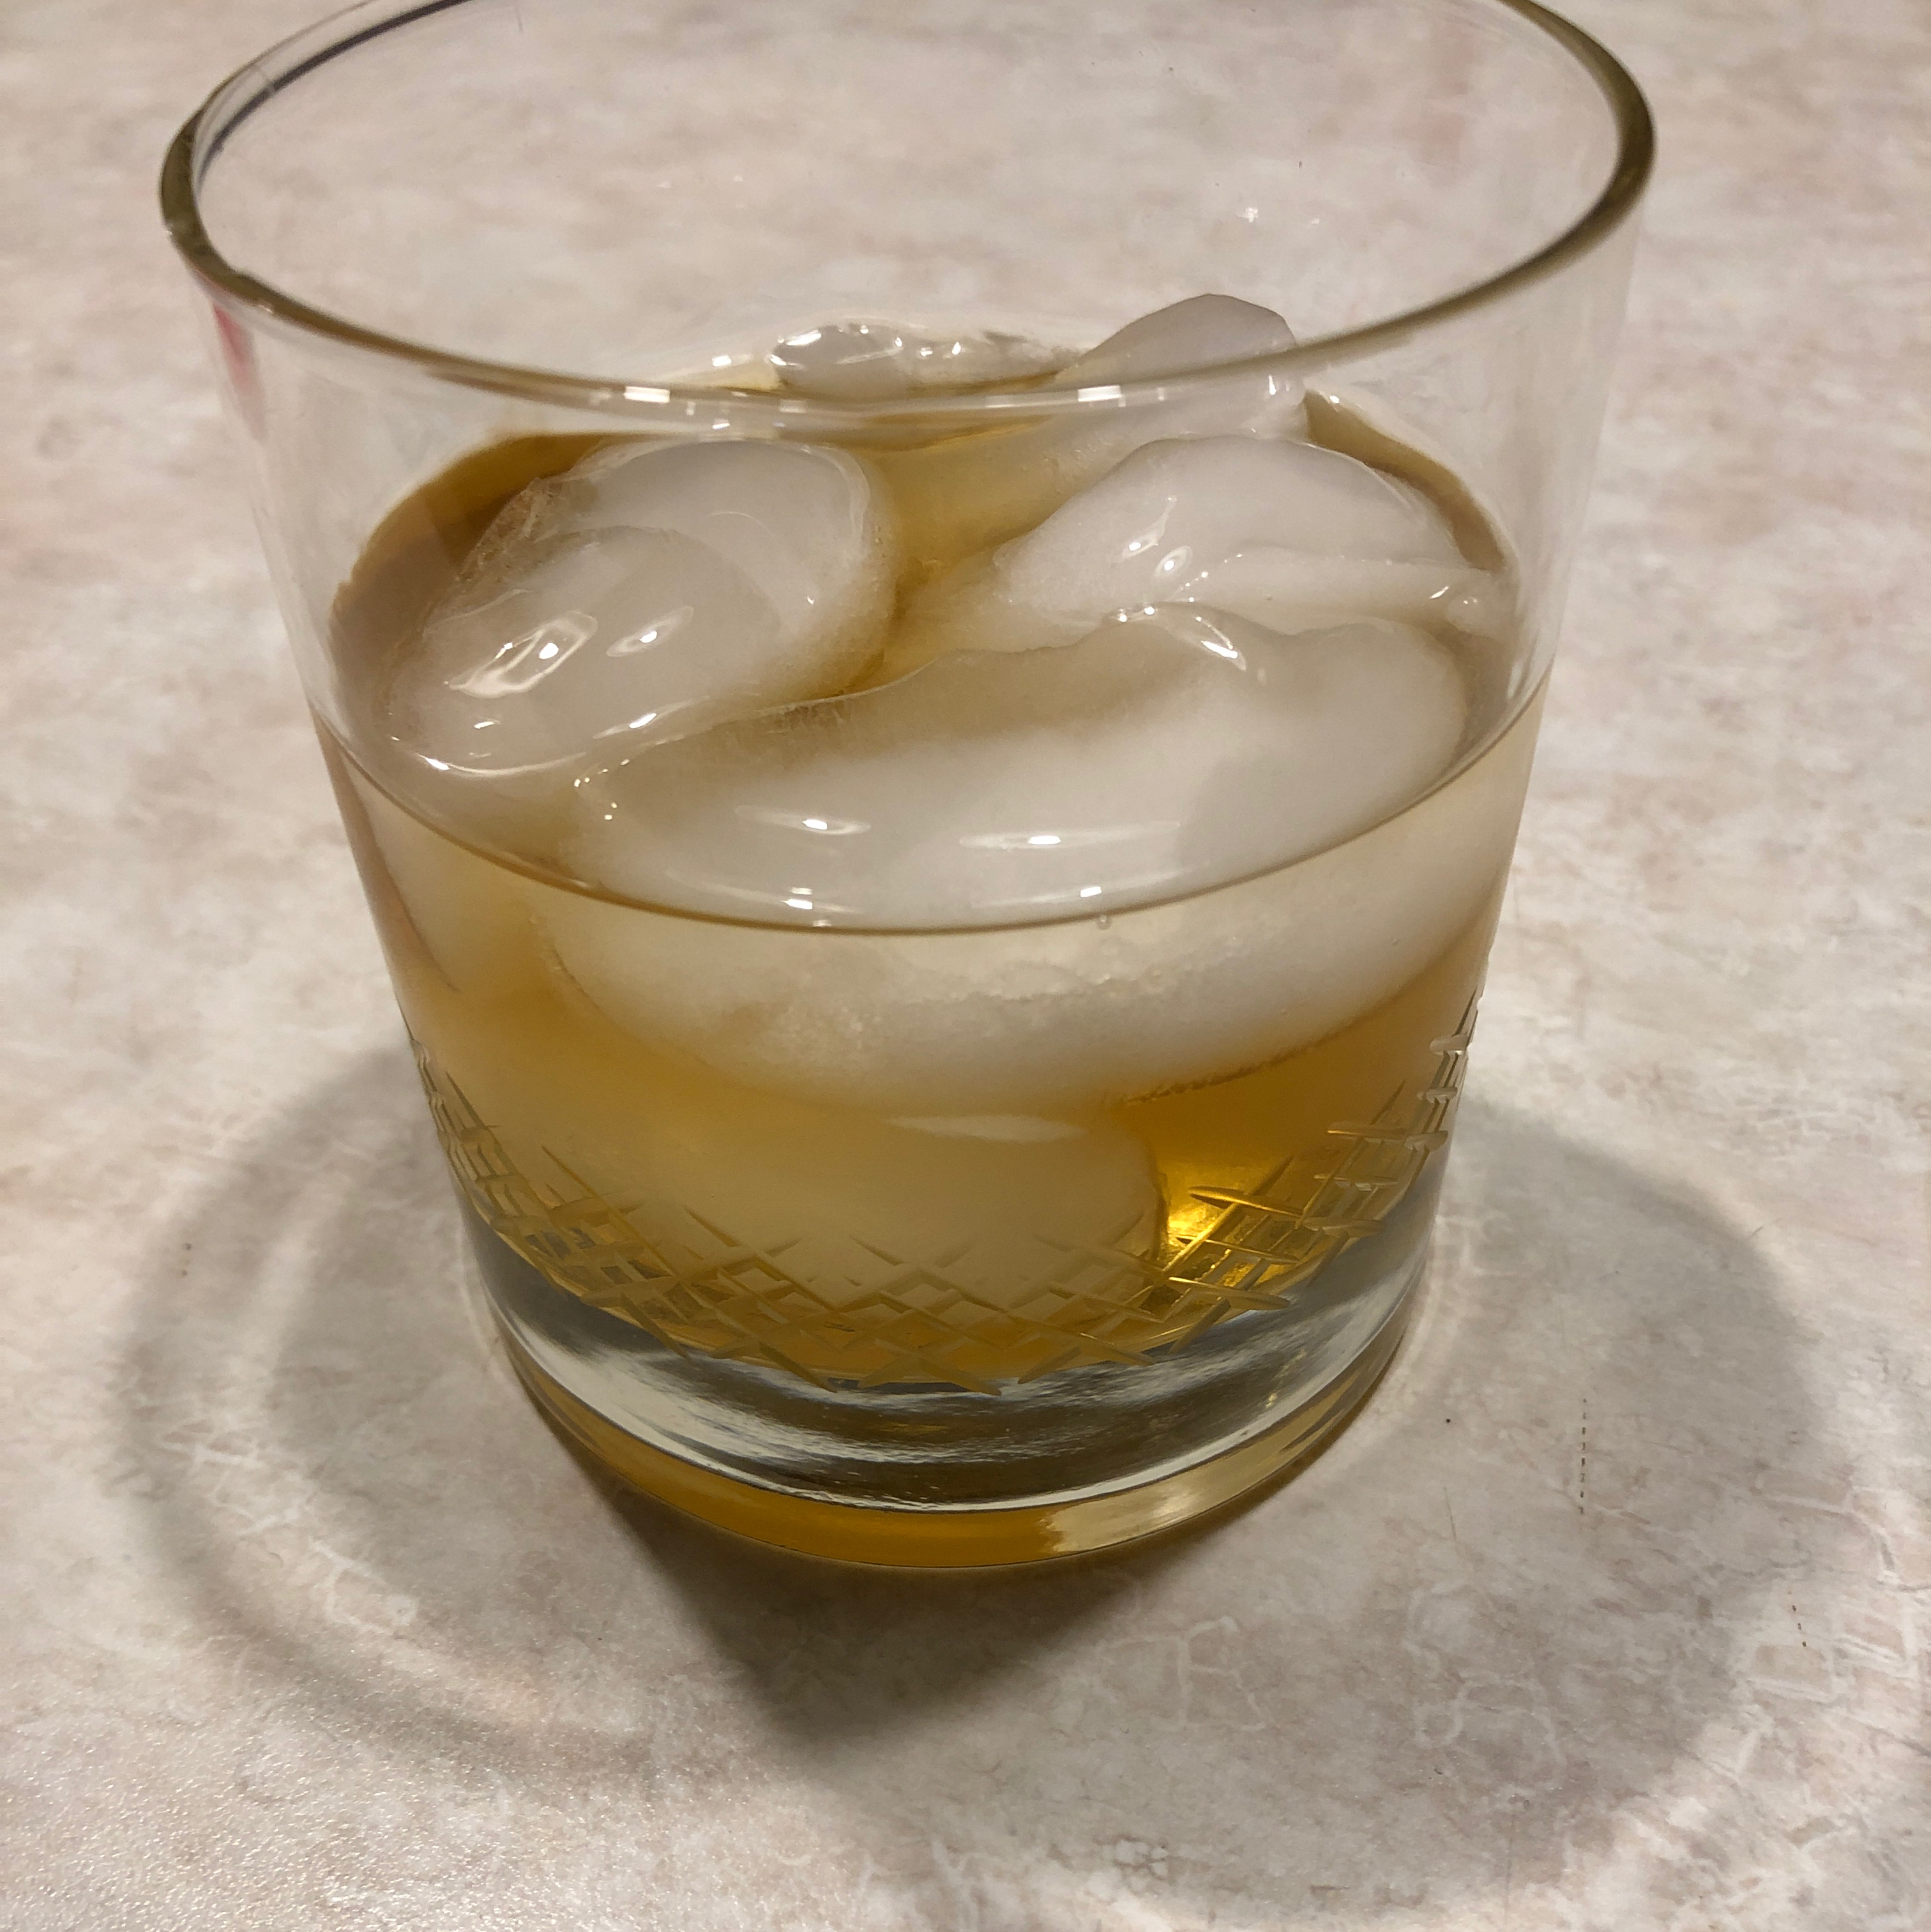 The Rusty Nail Cocktail